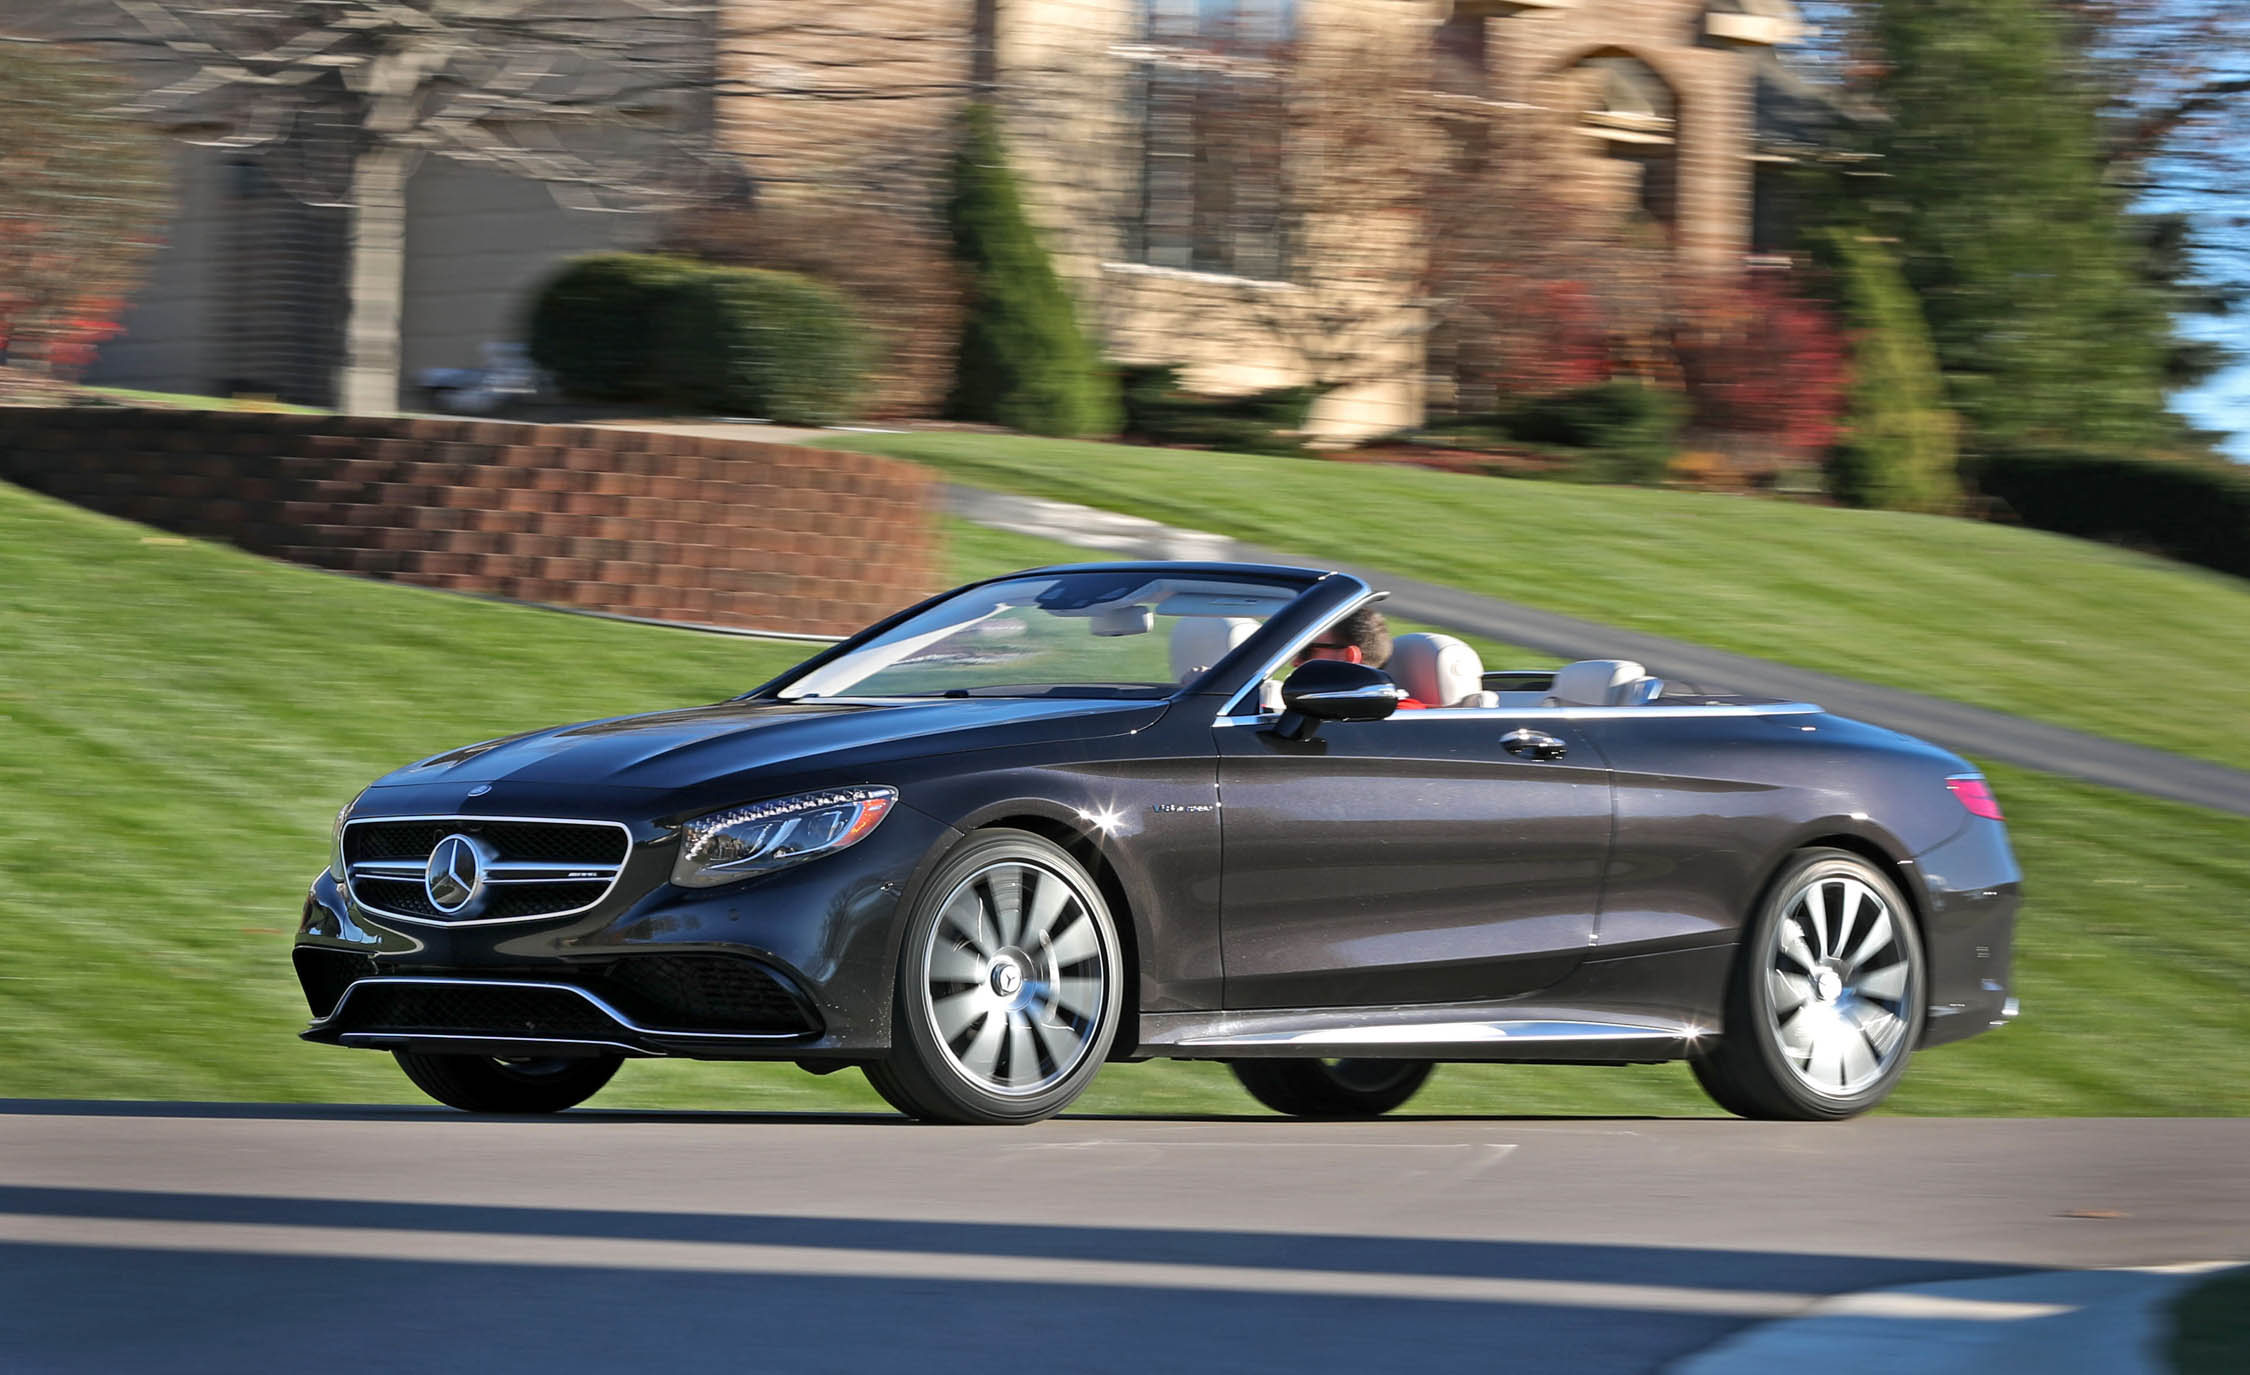 2017 Mercedes Amg S63 Cabriolet Test Drive Front And Side View (Photo 26 of 38)